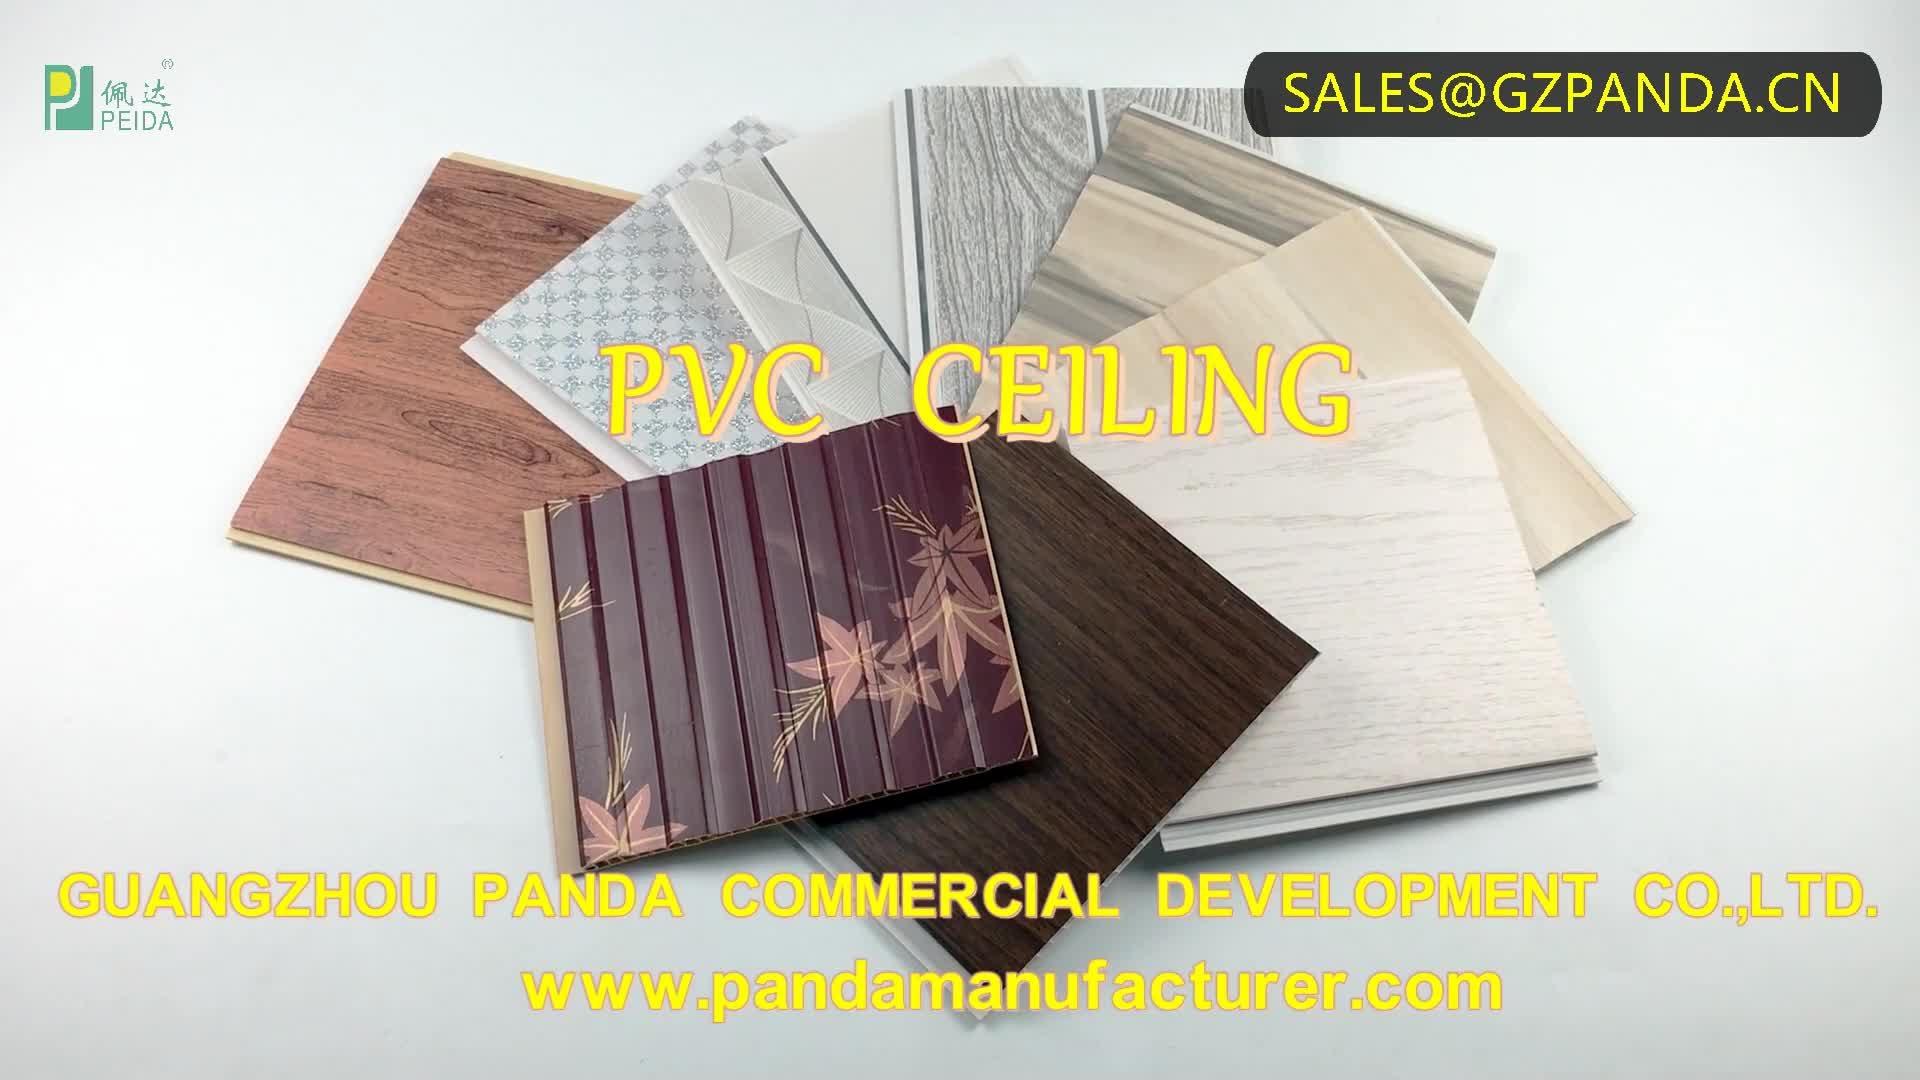 Competitive Pice Cathroom PVC Ceiling Wall Panel In China